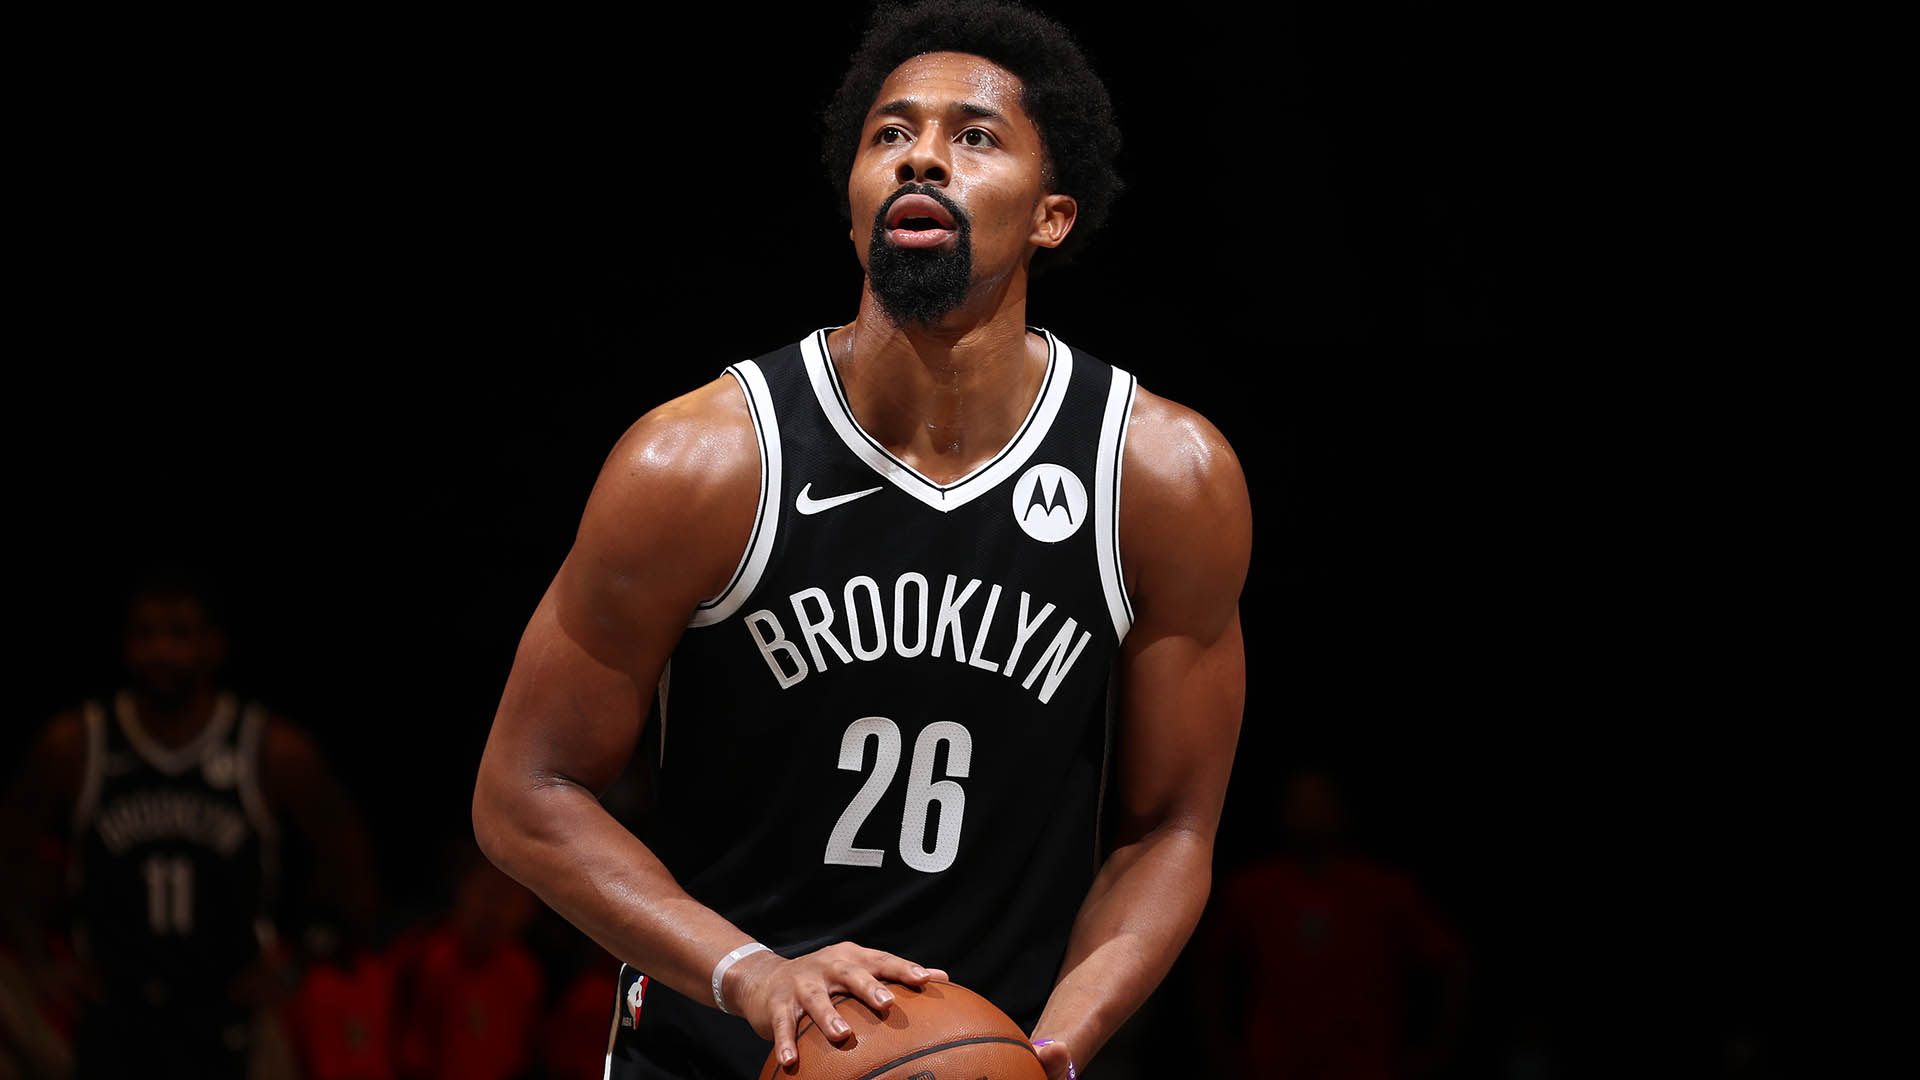 Spencer Dinwiddie has successful ACL surgery